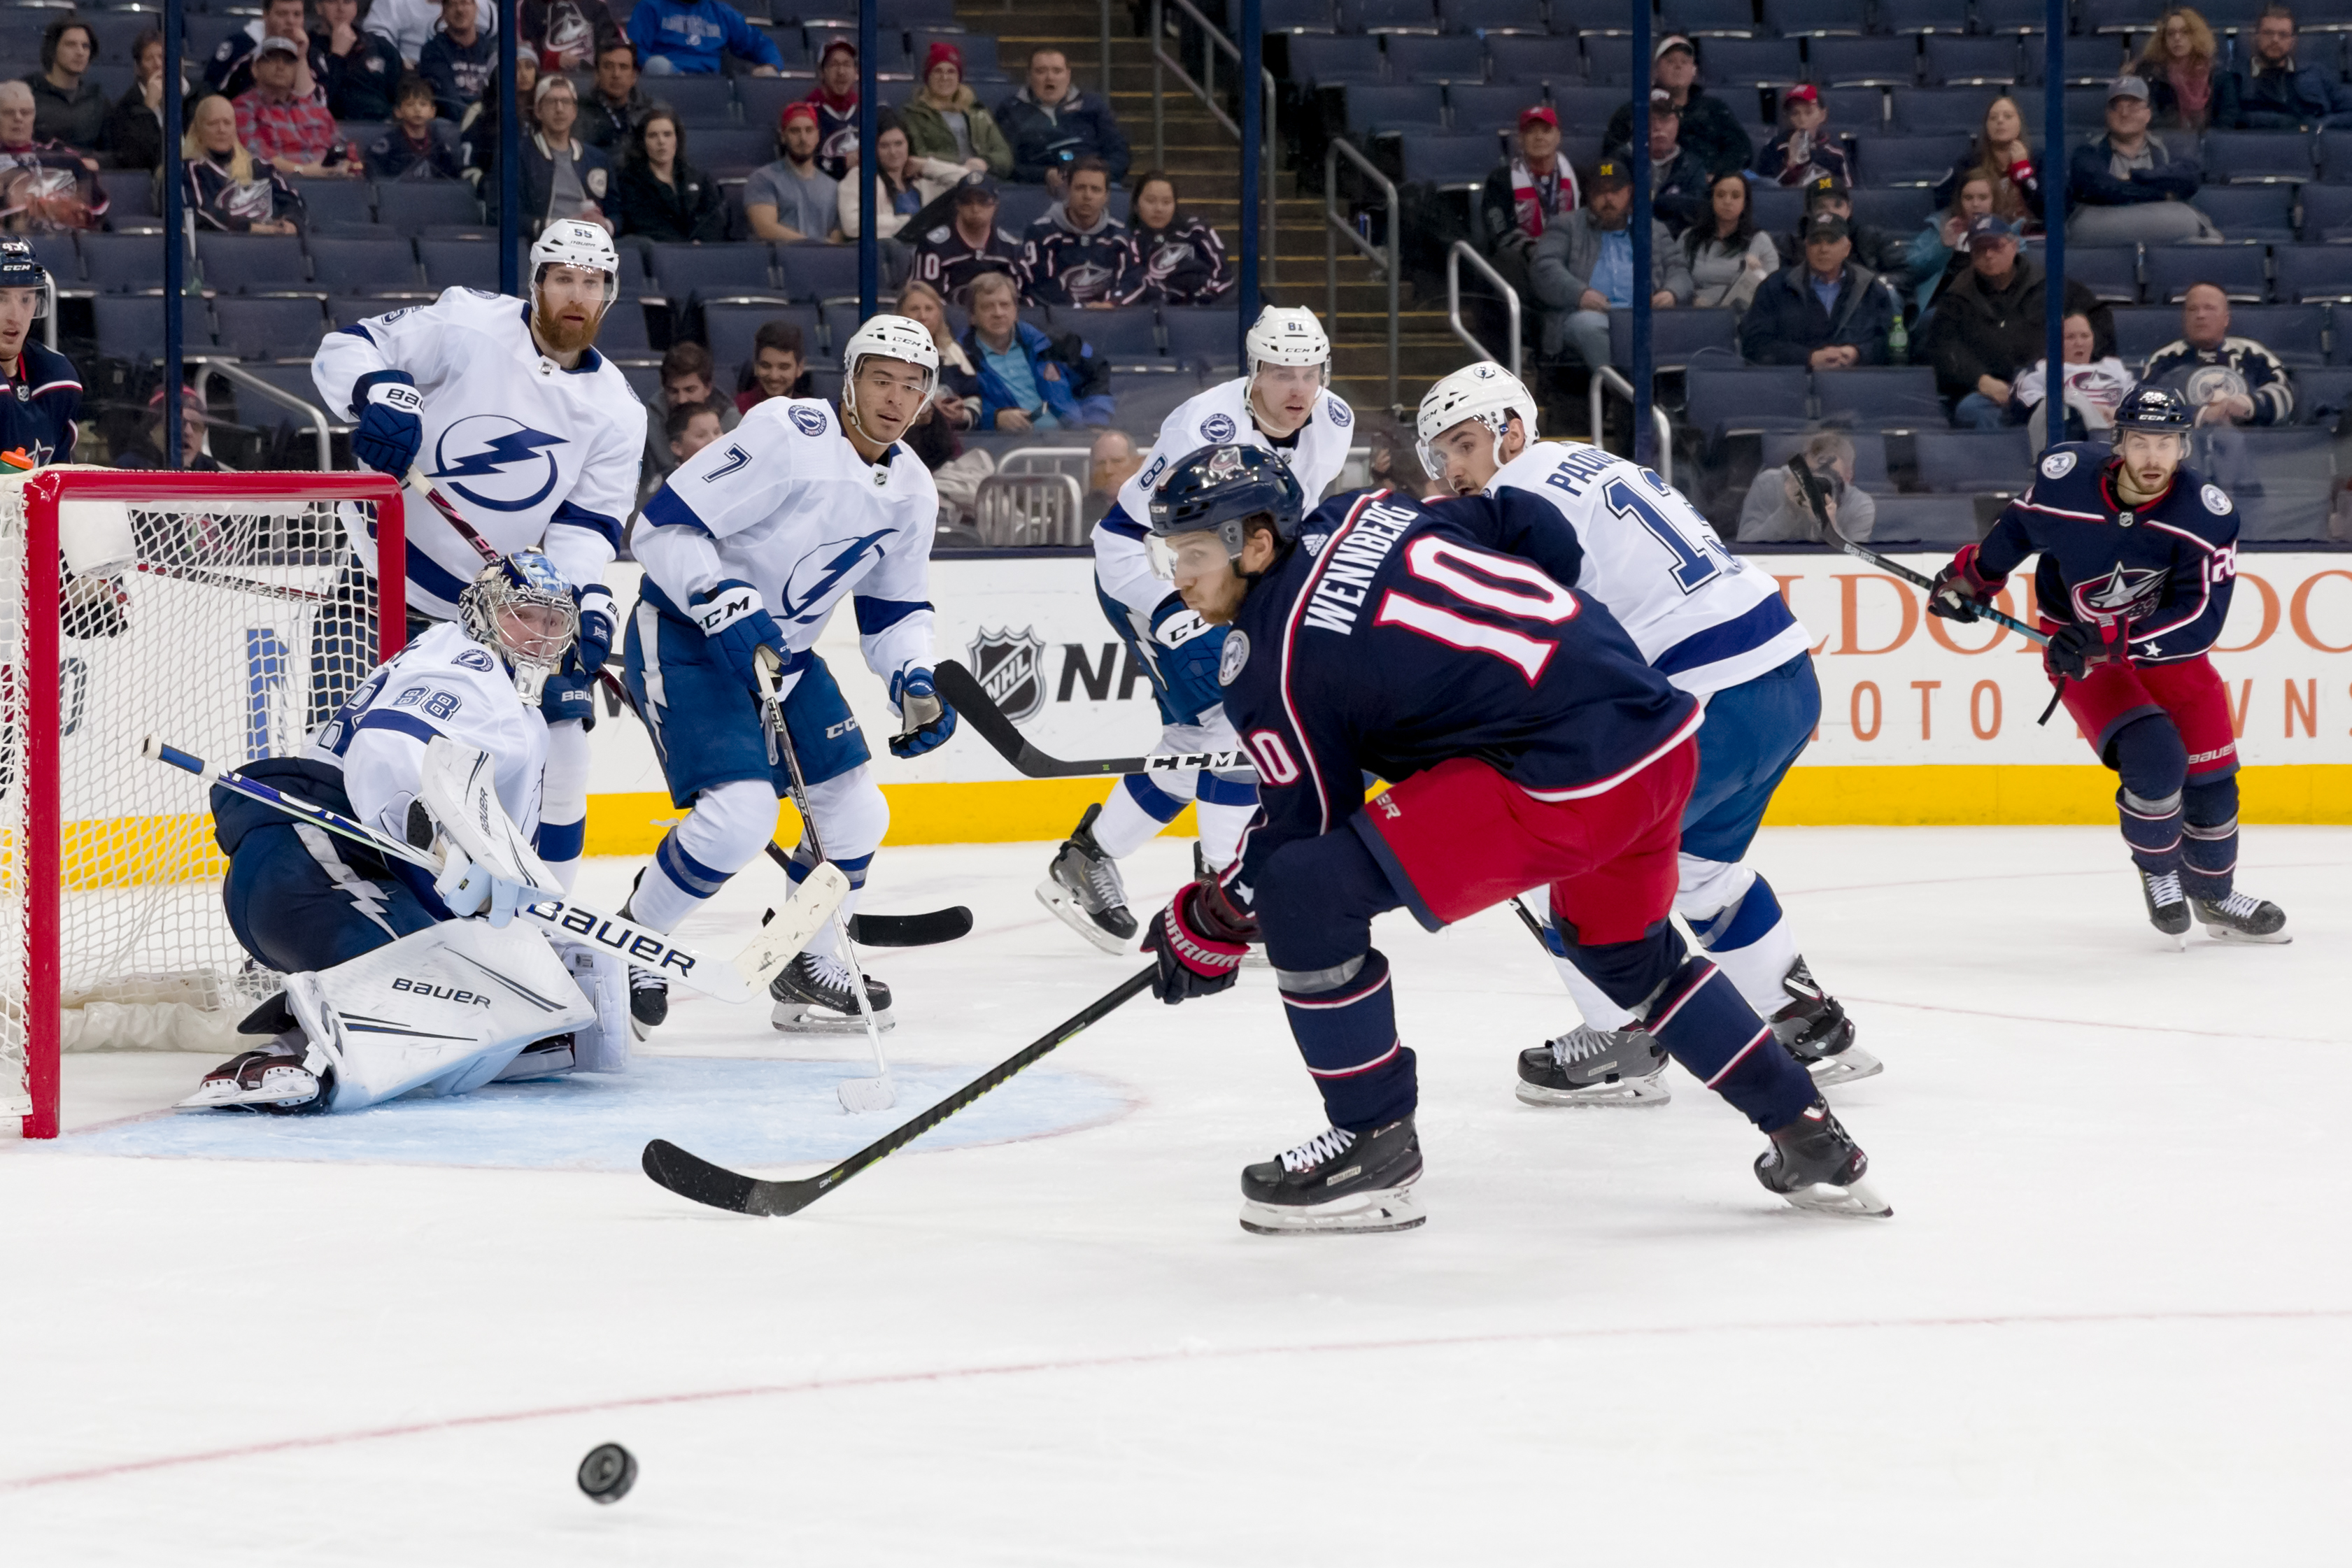 Tampa Bay Lightning goaltender Andrei Vasilevskiy (88) deflects a shot from Columbus Blue Jackets center Alexander Wennberg (10) in a game between the Columbus Blue Jackets and the Tampa Bay Lightning on February 18, 2019 at Nationwide Arena in Columbus, OH.